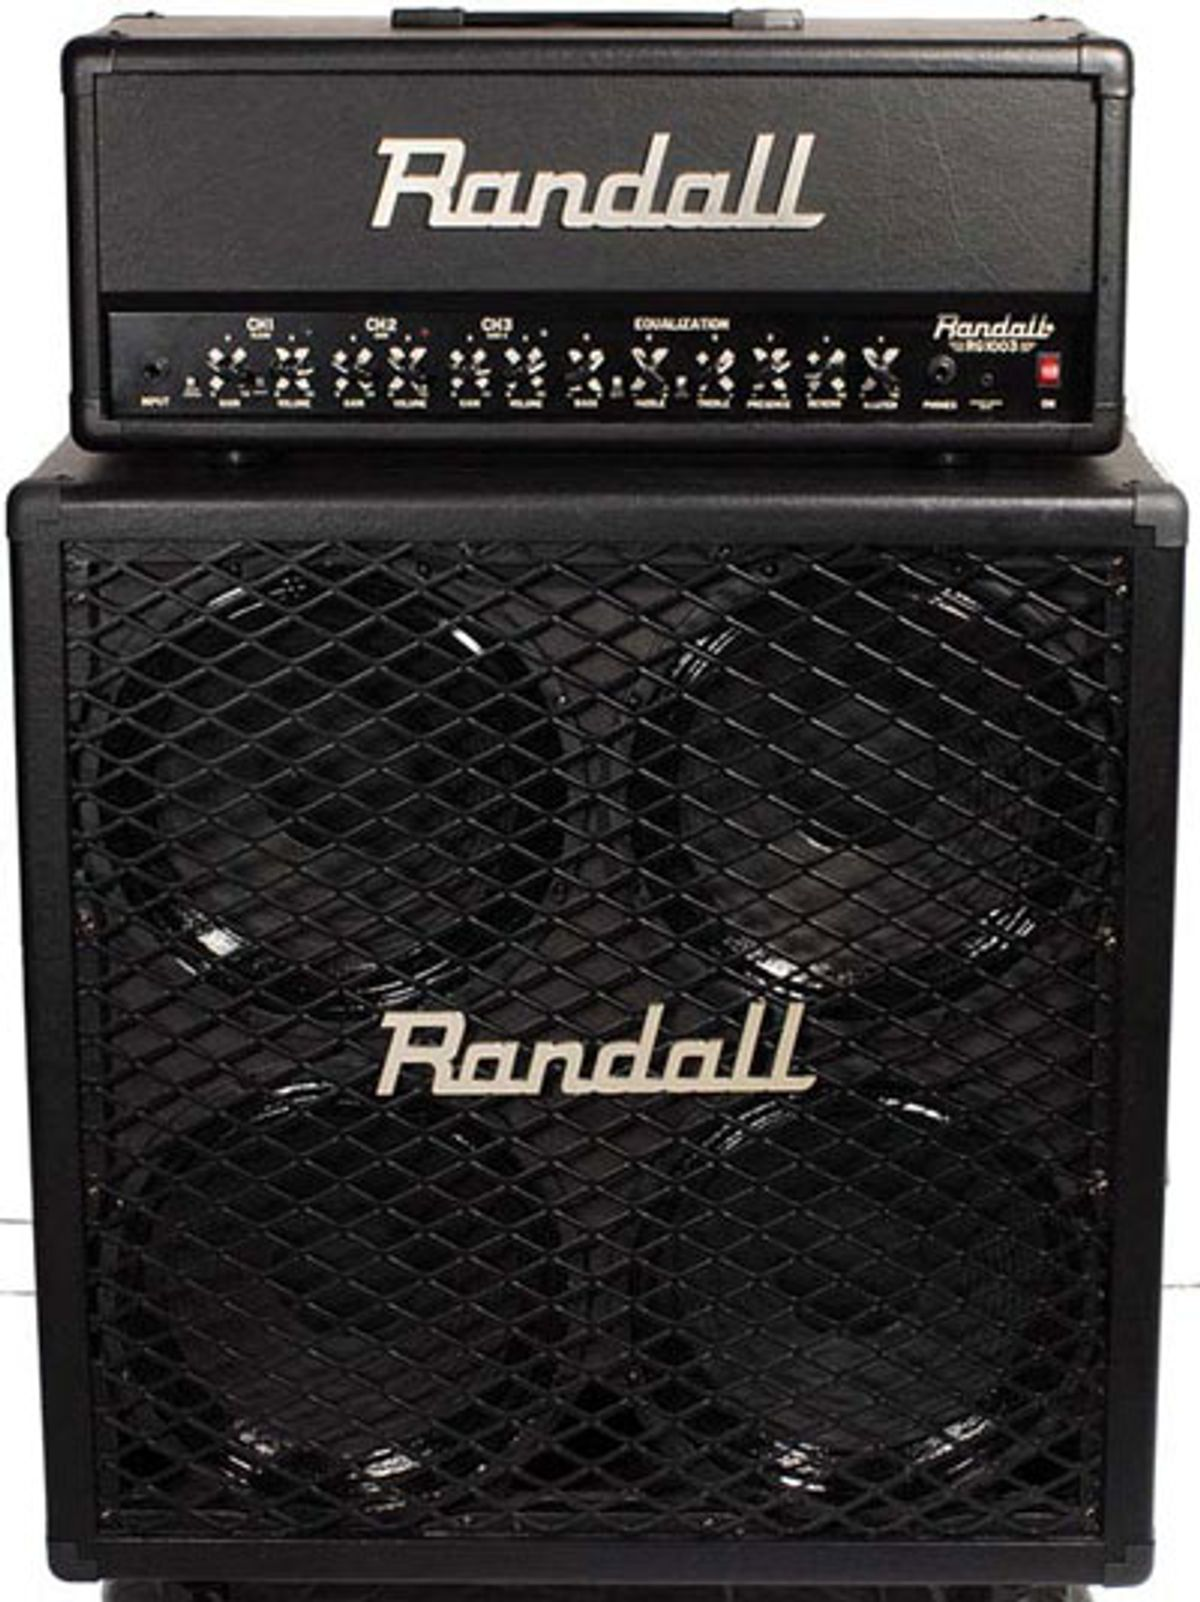 Randall Introduces RG Series and RG13 Pedal/Amplifier